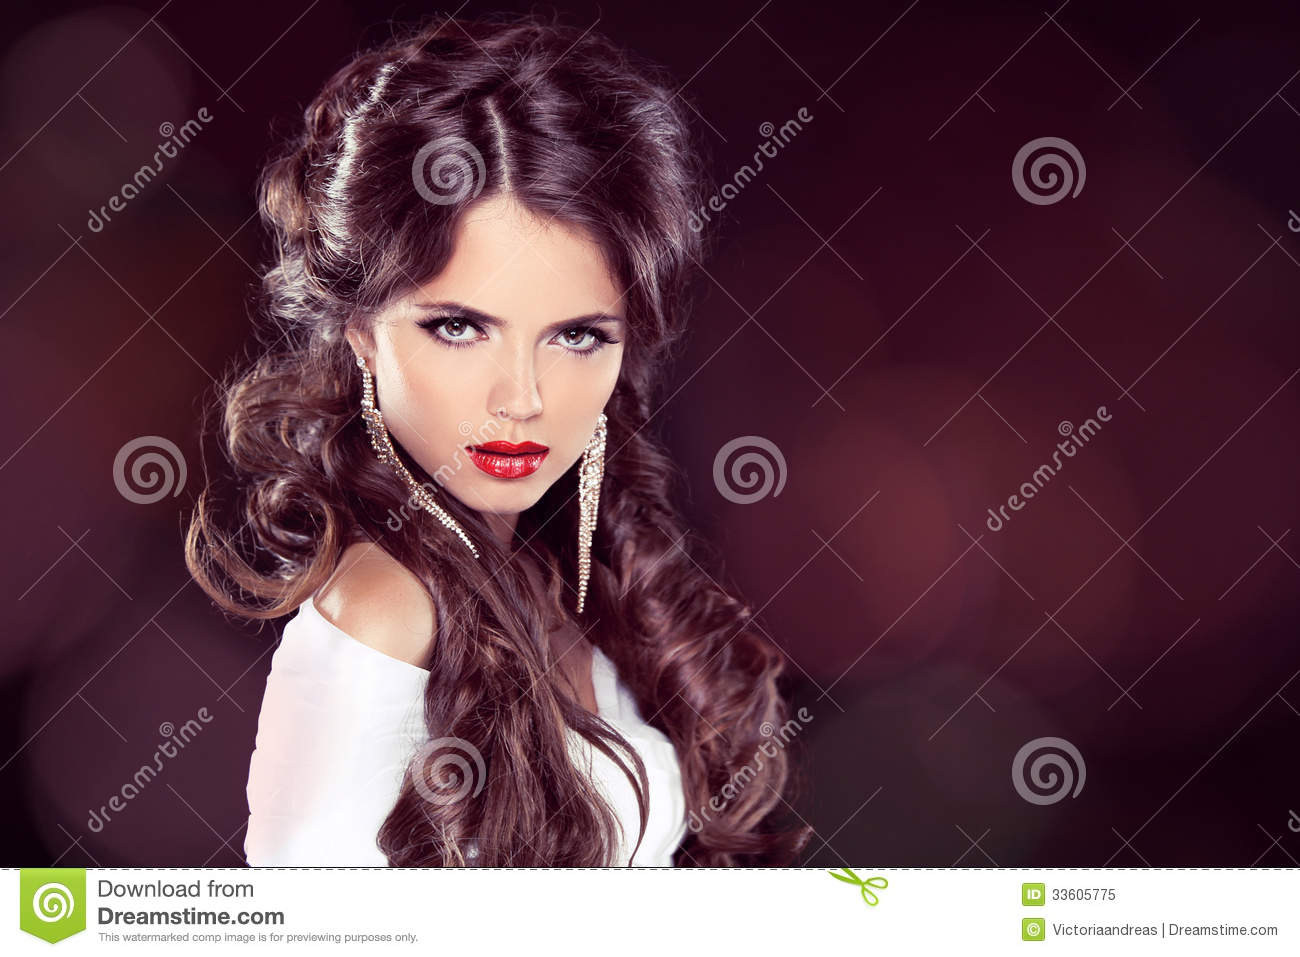 Beauty Model Woman with Professional Makeup. Hairstyle. Stylish